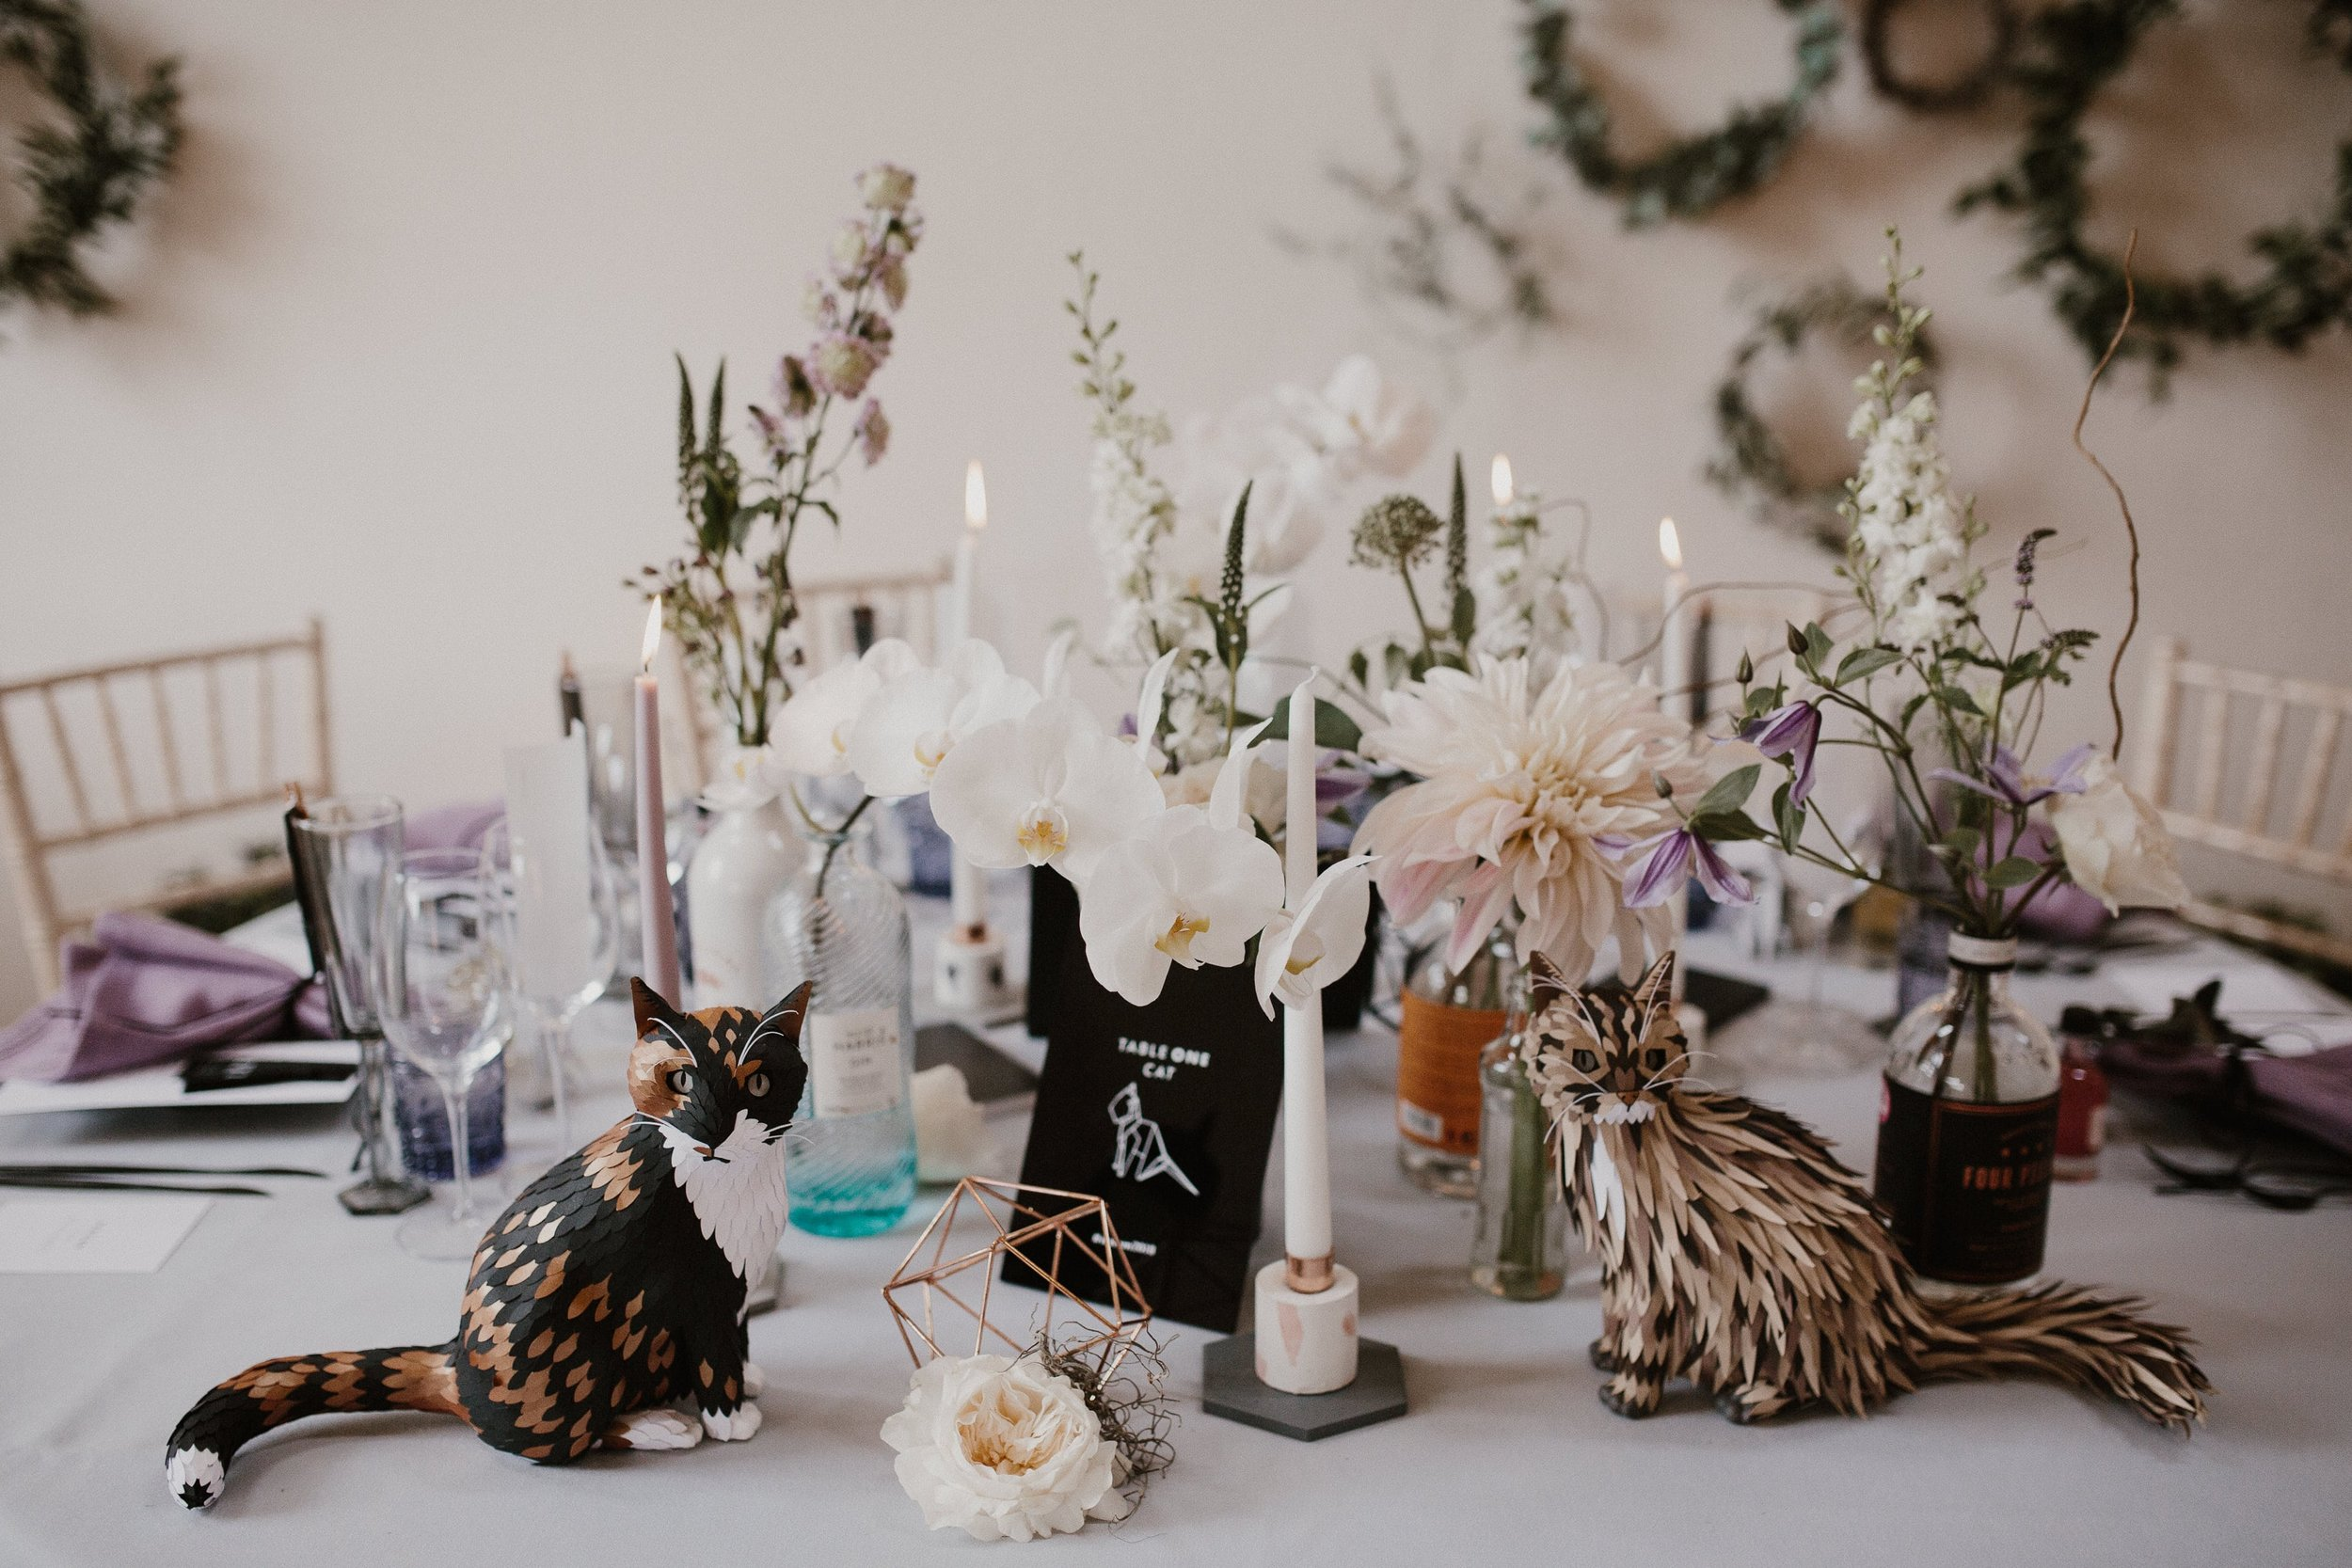 Nat and Tom - 01 - Venue and Details - Sara Lincoln Photography-45-min.jpg